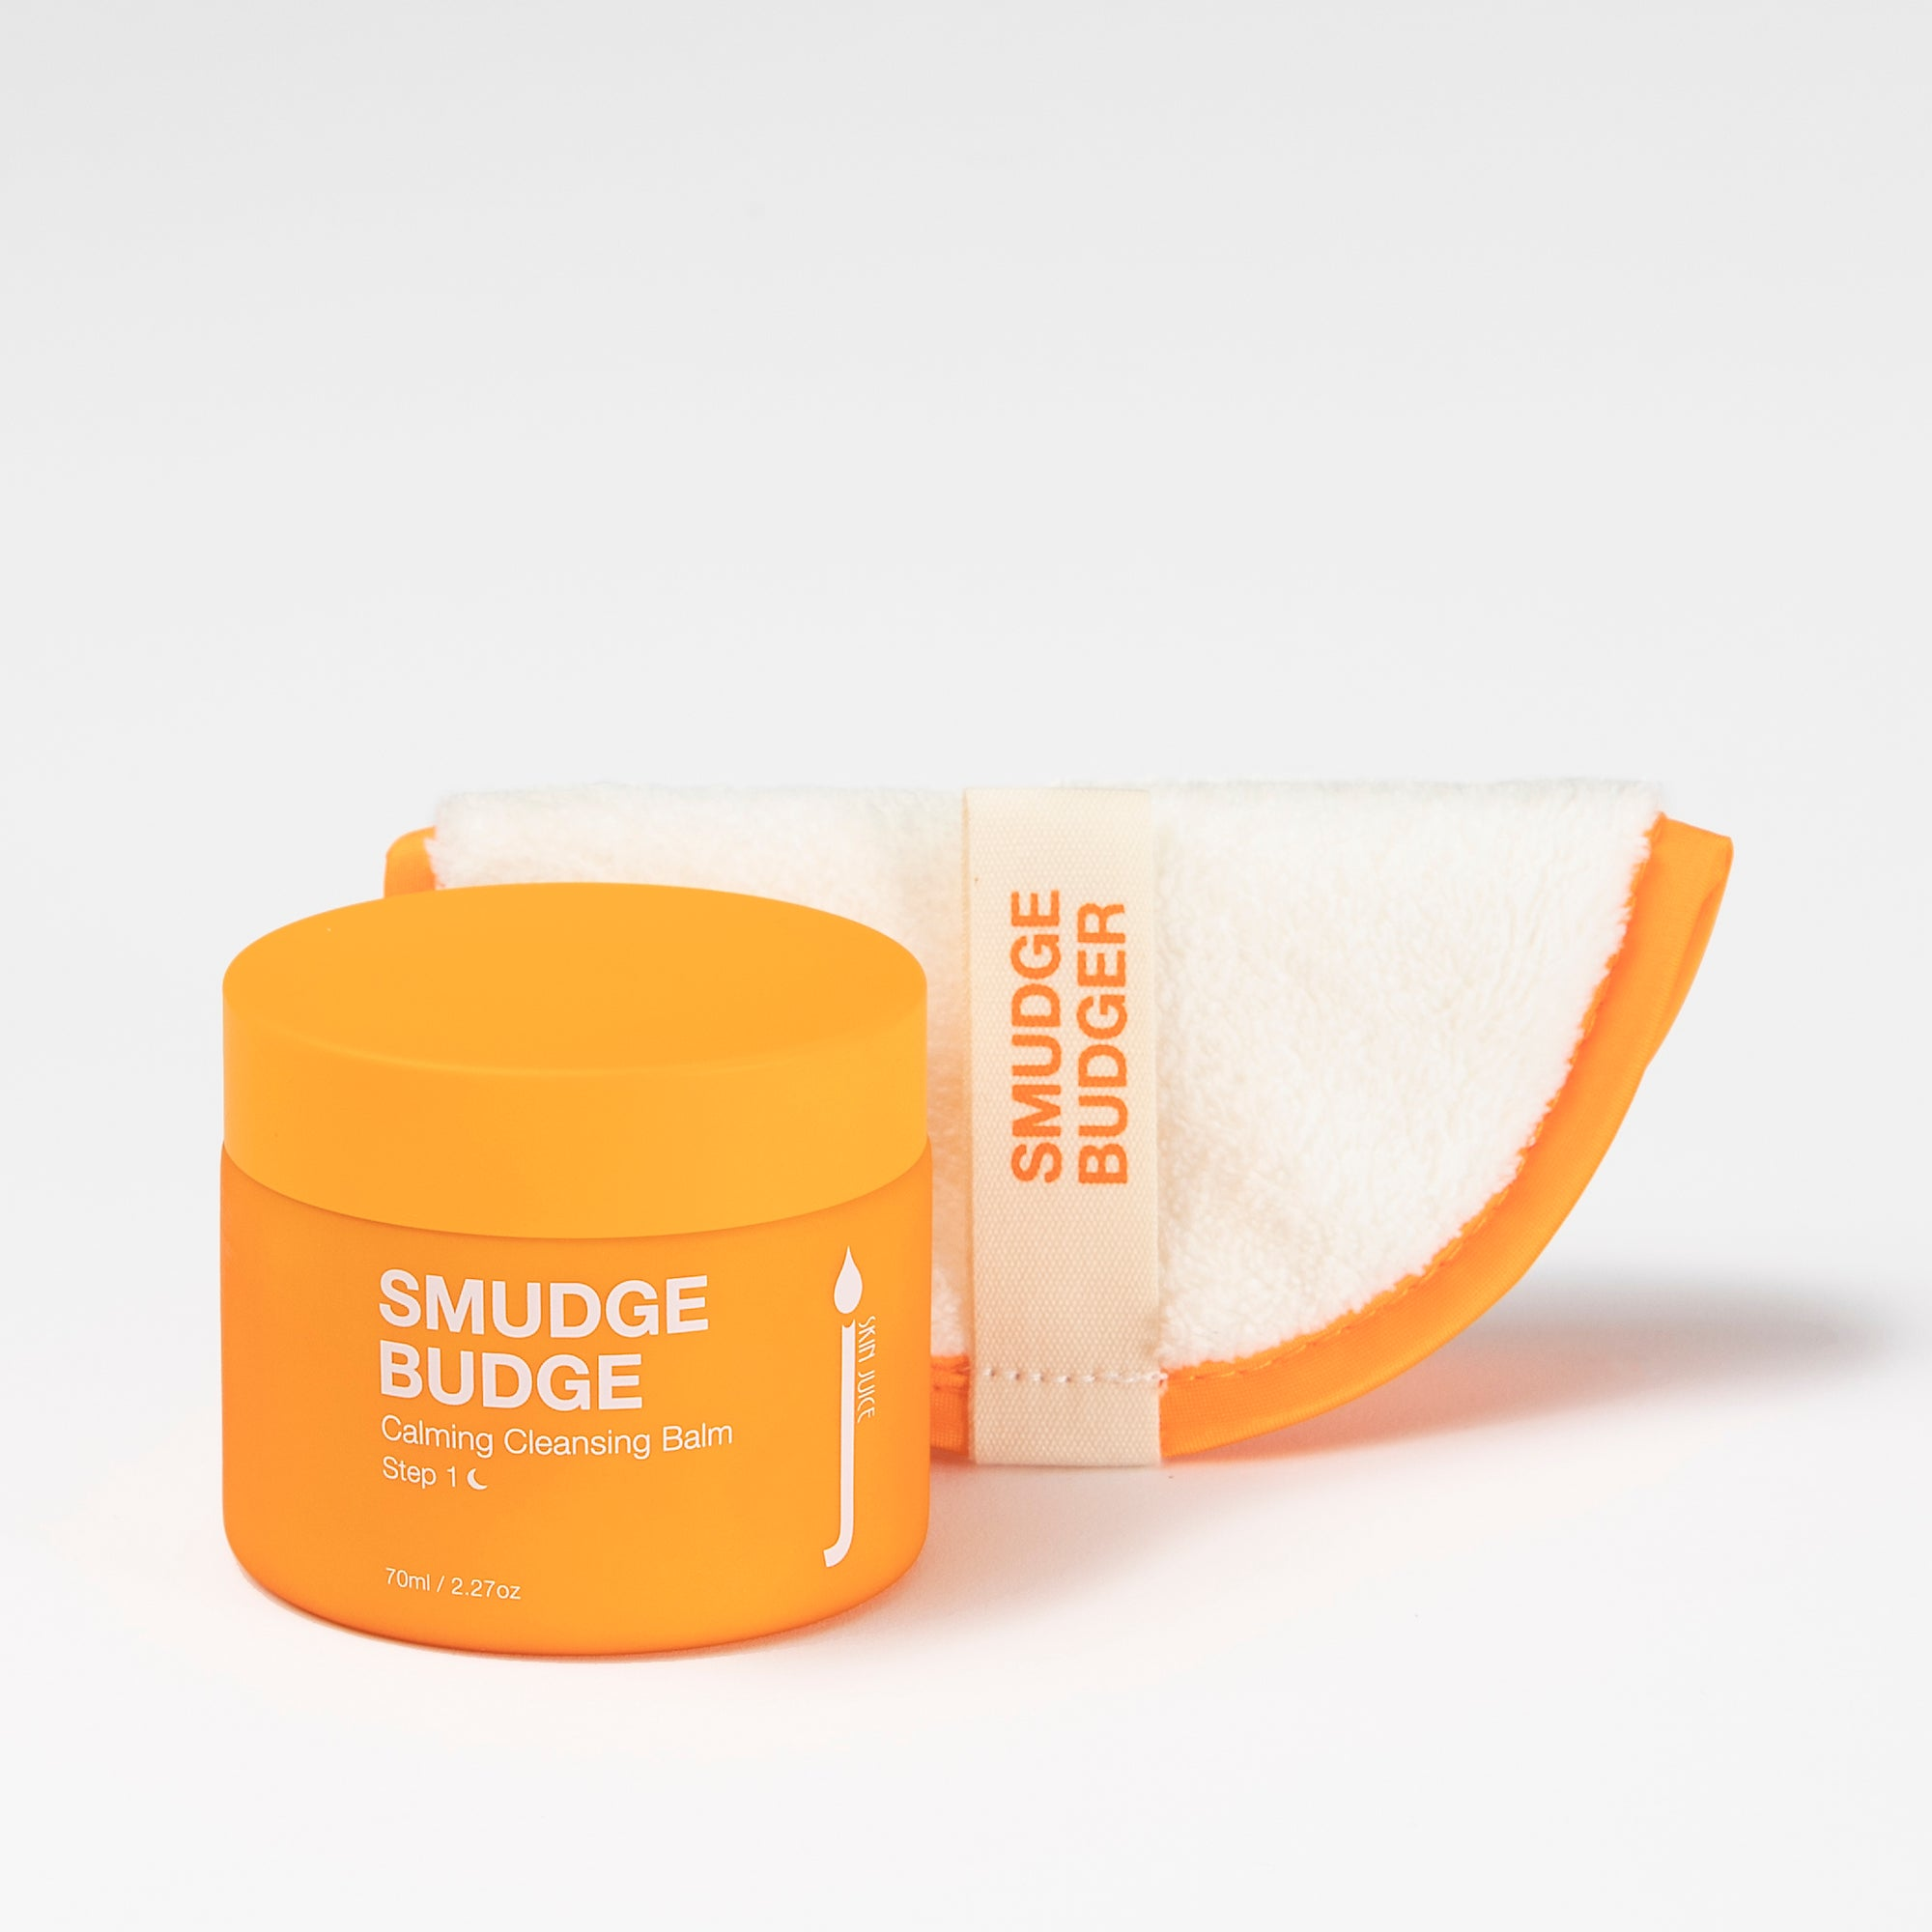 Skin Juice Smudge Budge Cleansing Balm. Shop now at Skinbase Beauty